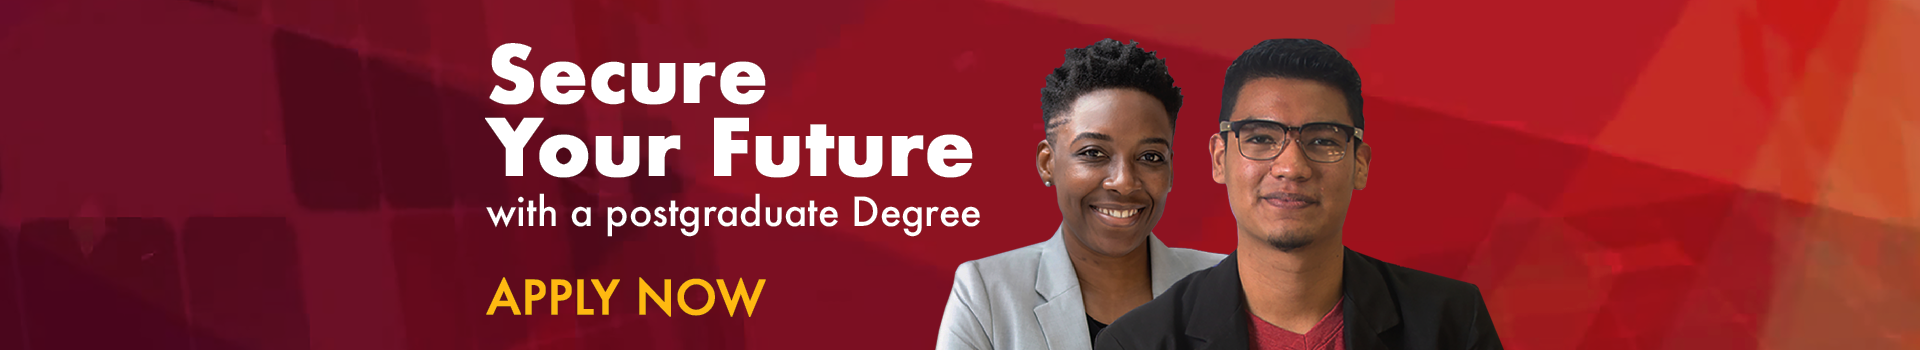 Secure Your Future Postgraduate